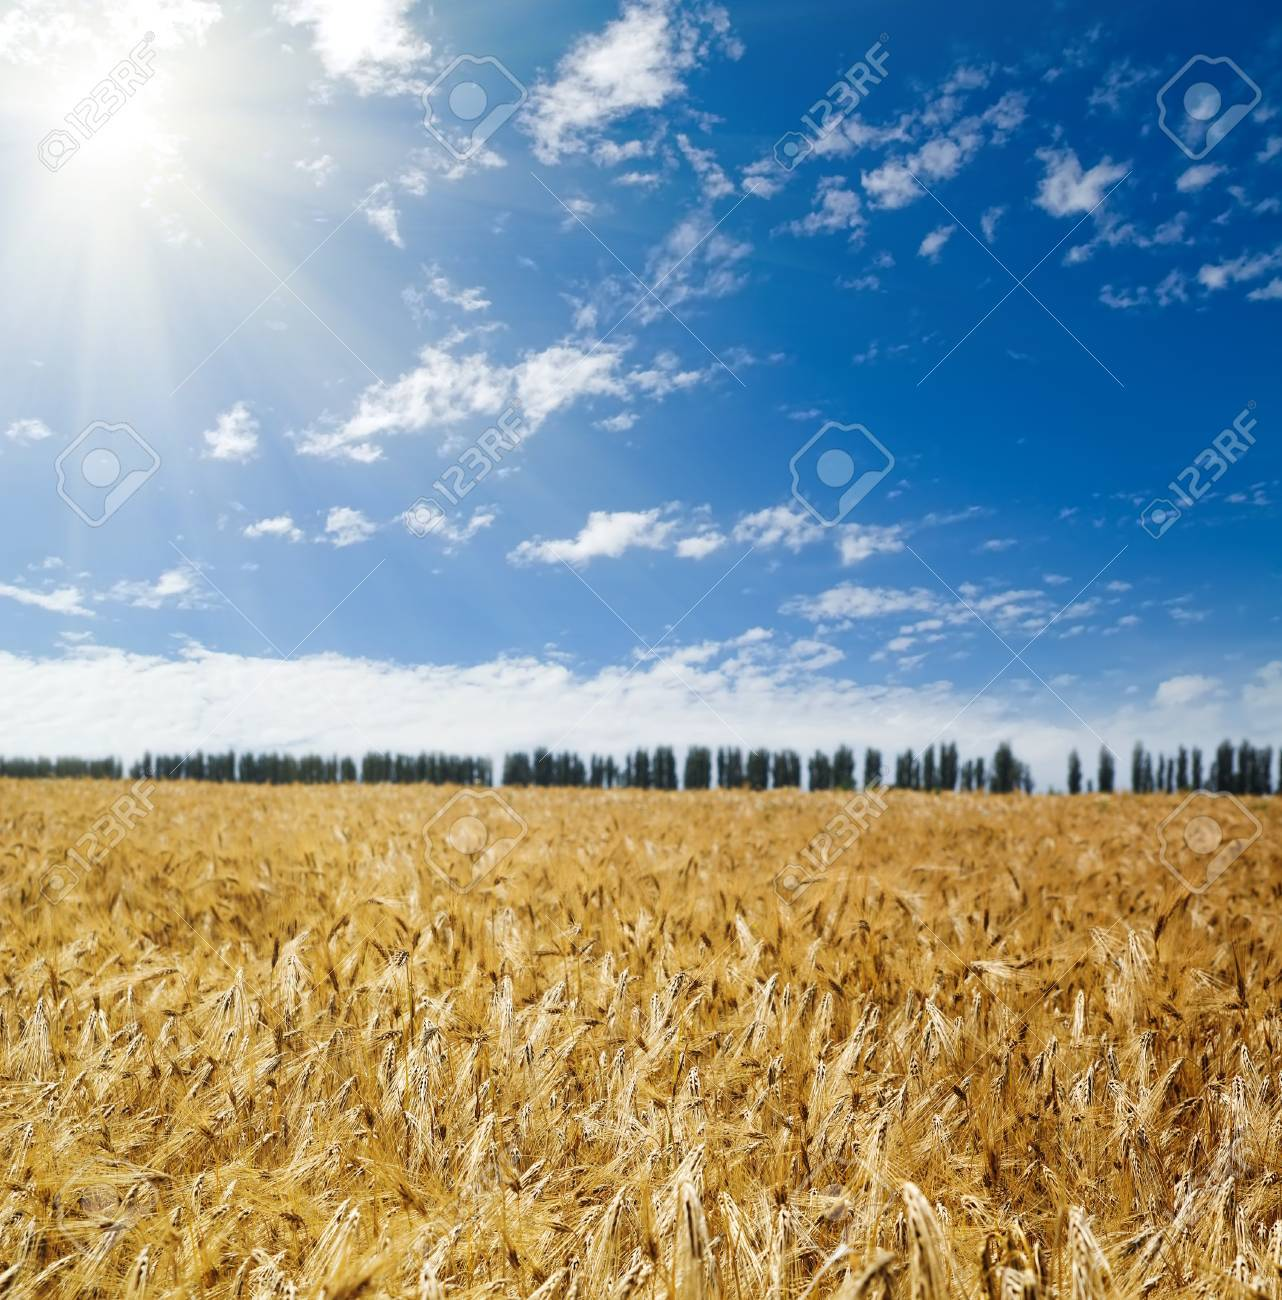 sun over field with wheat Stock Photo - 8124842